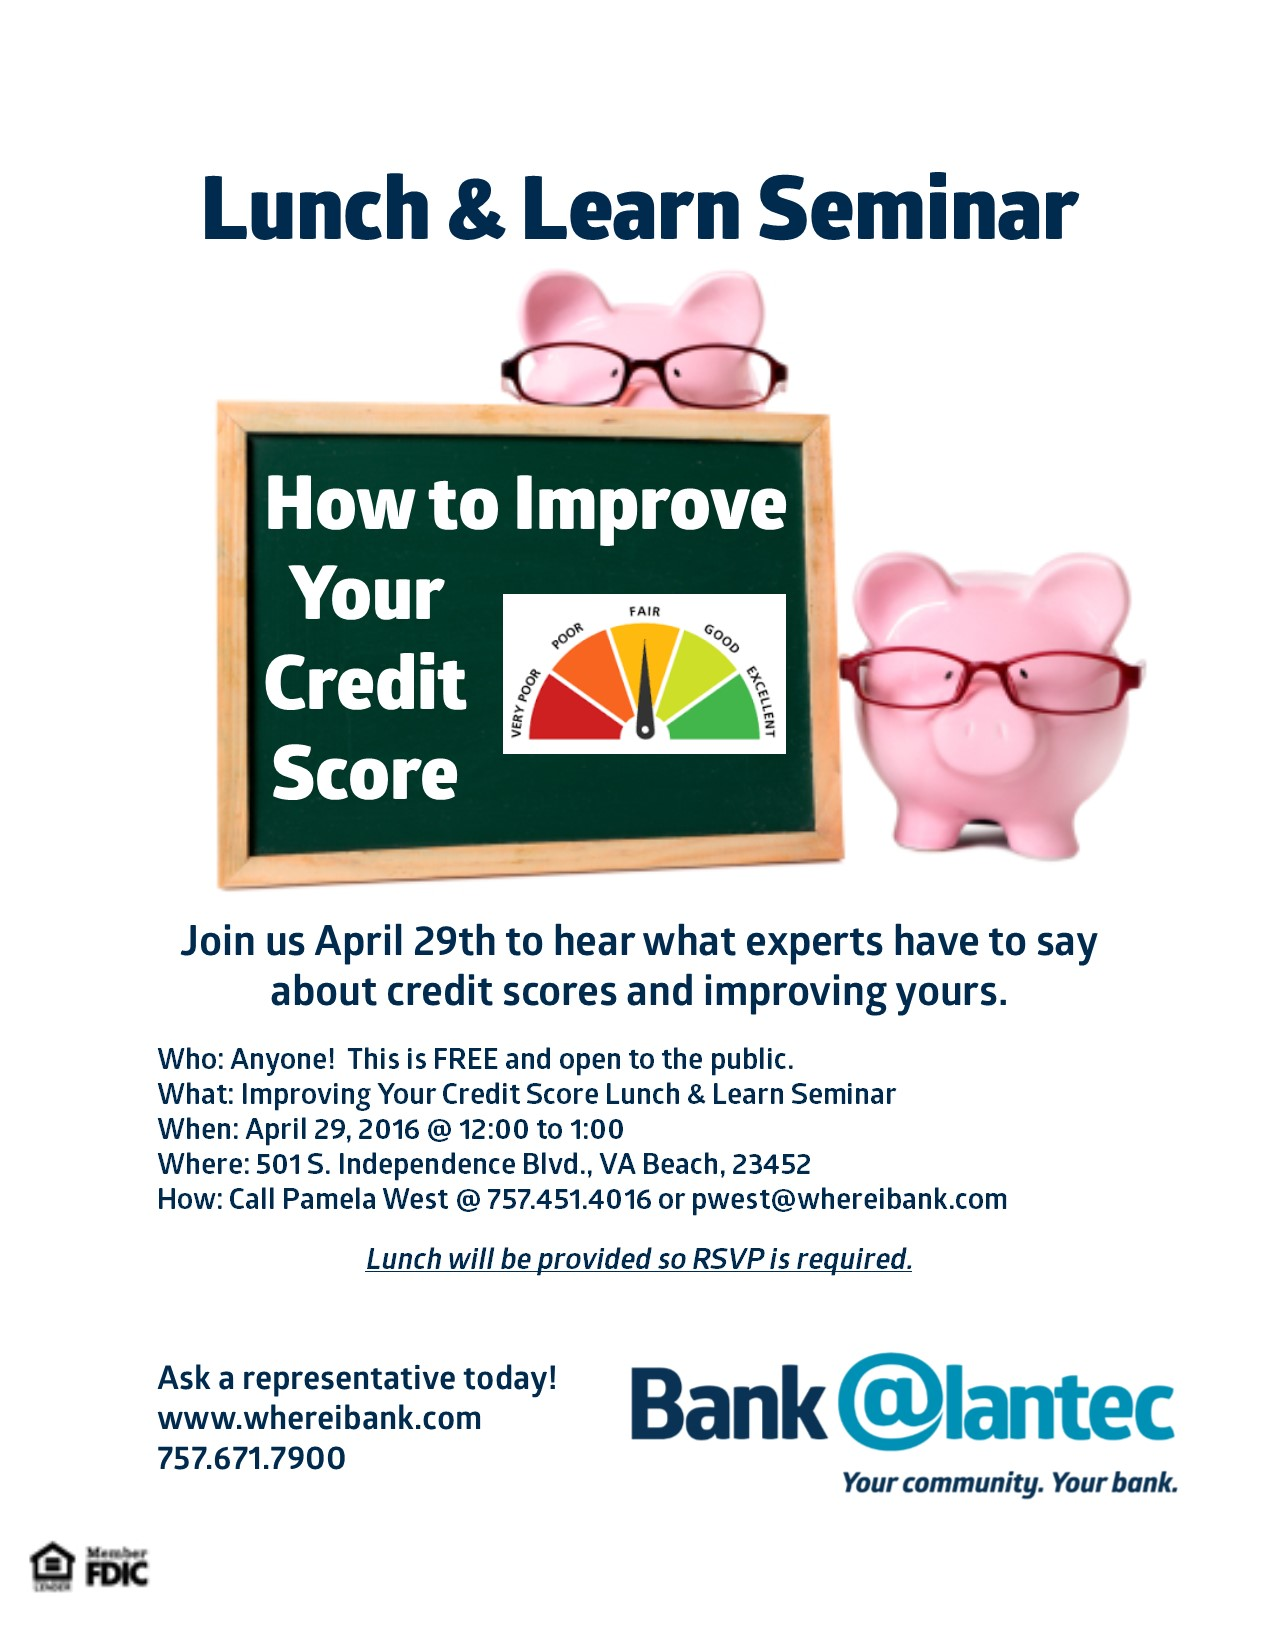 Bank @lantec Lunch & Learn